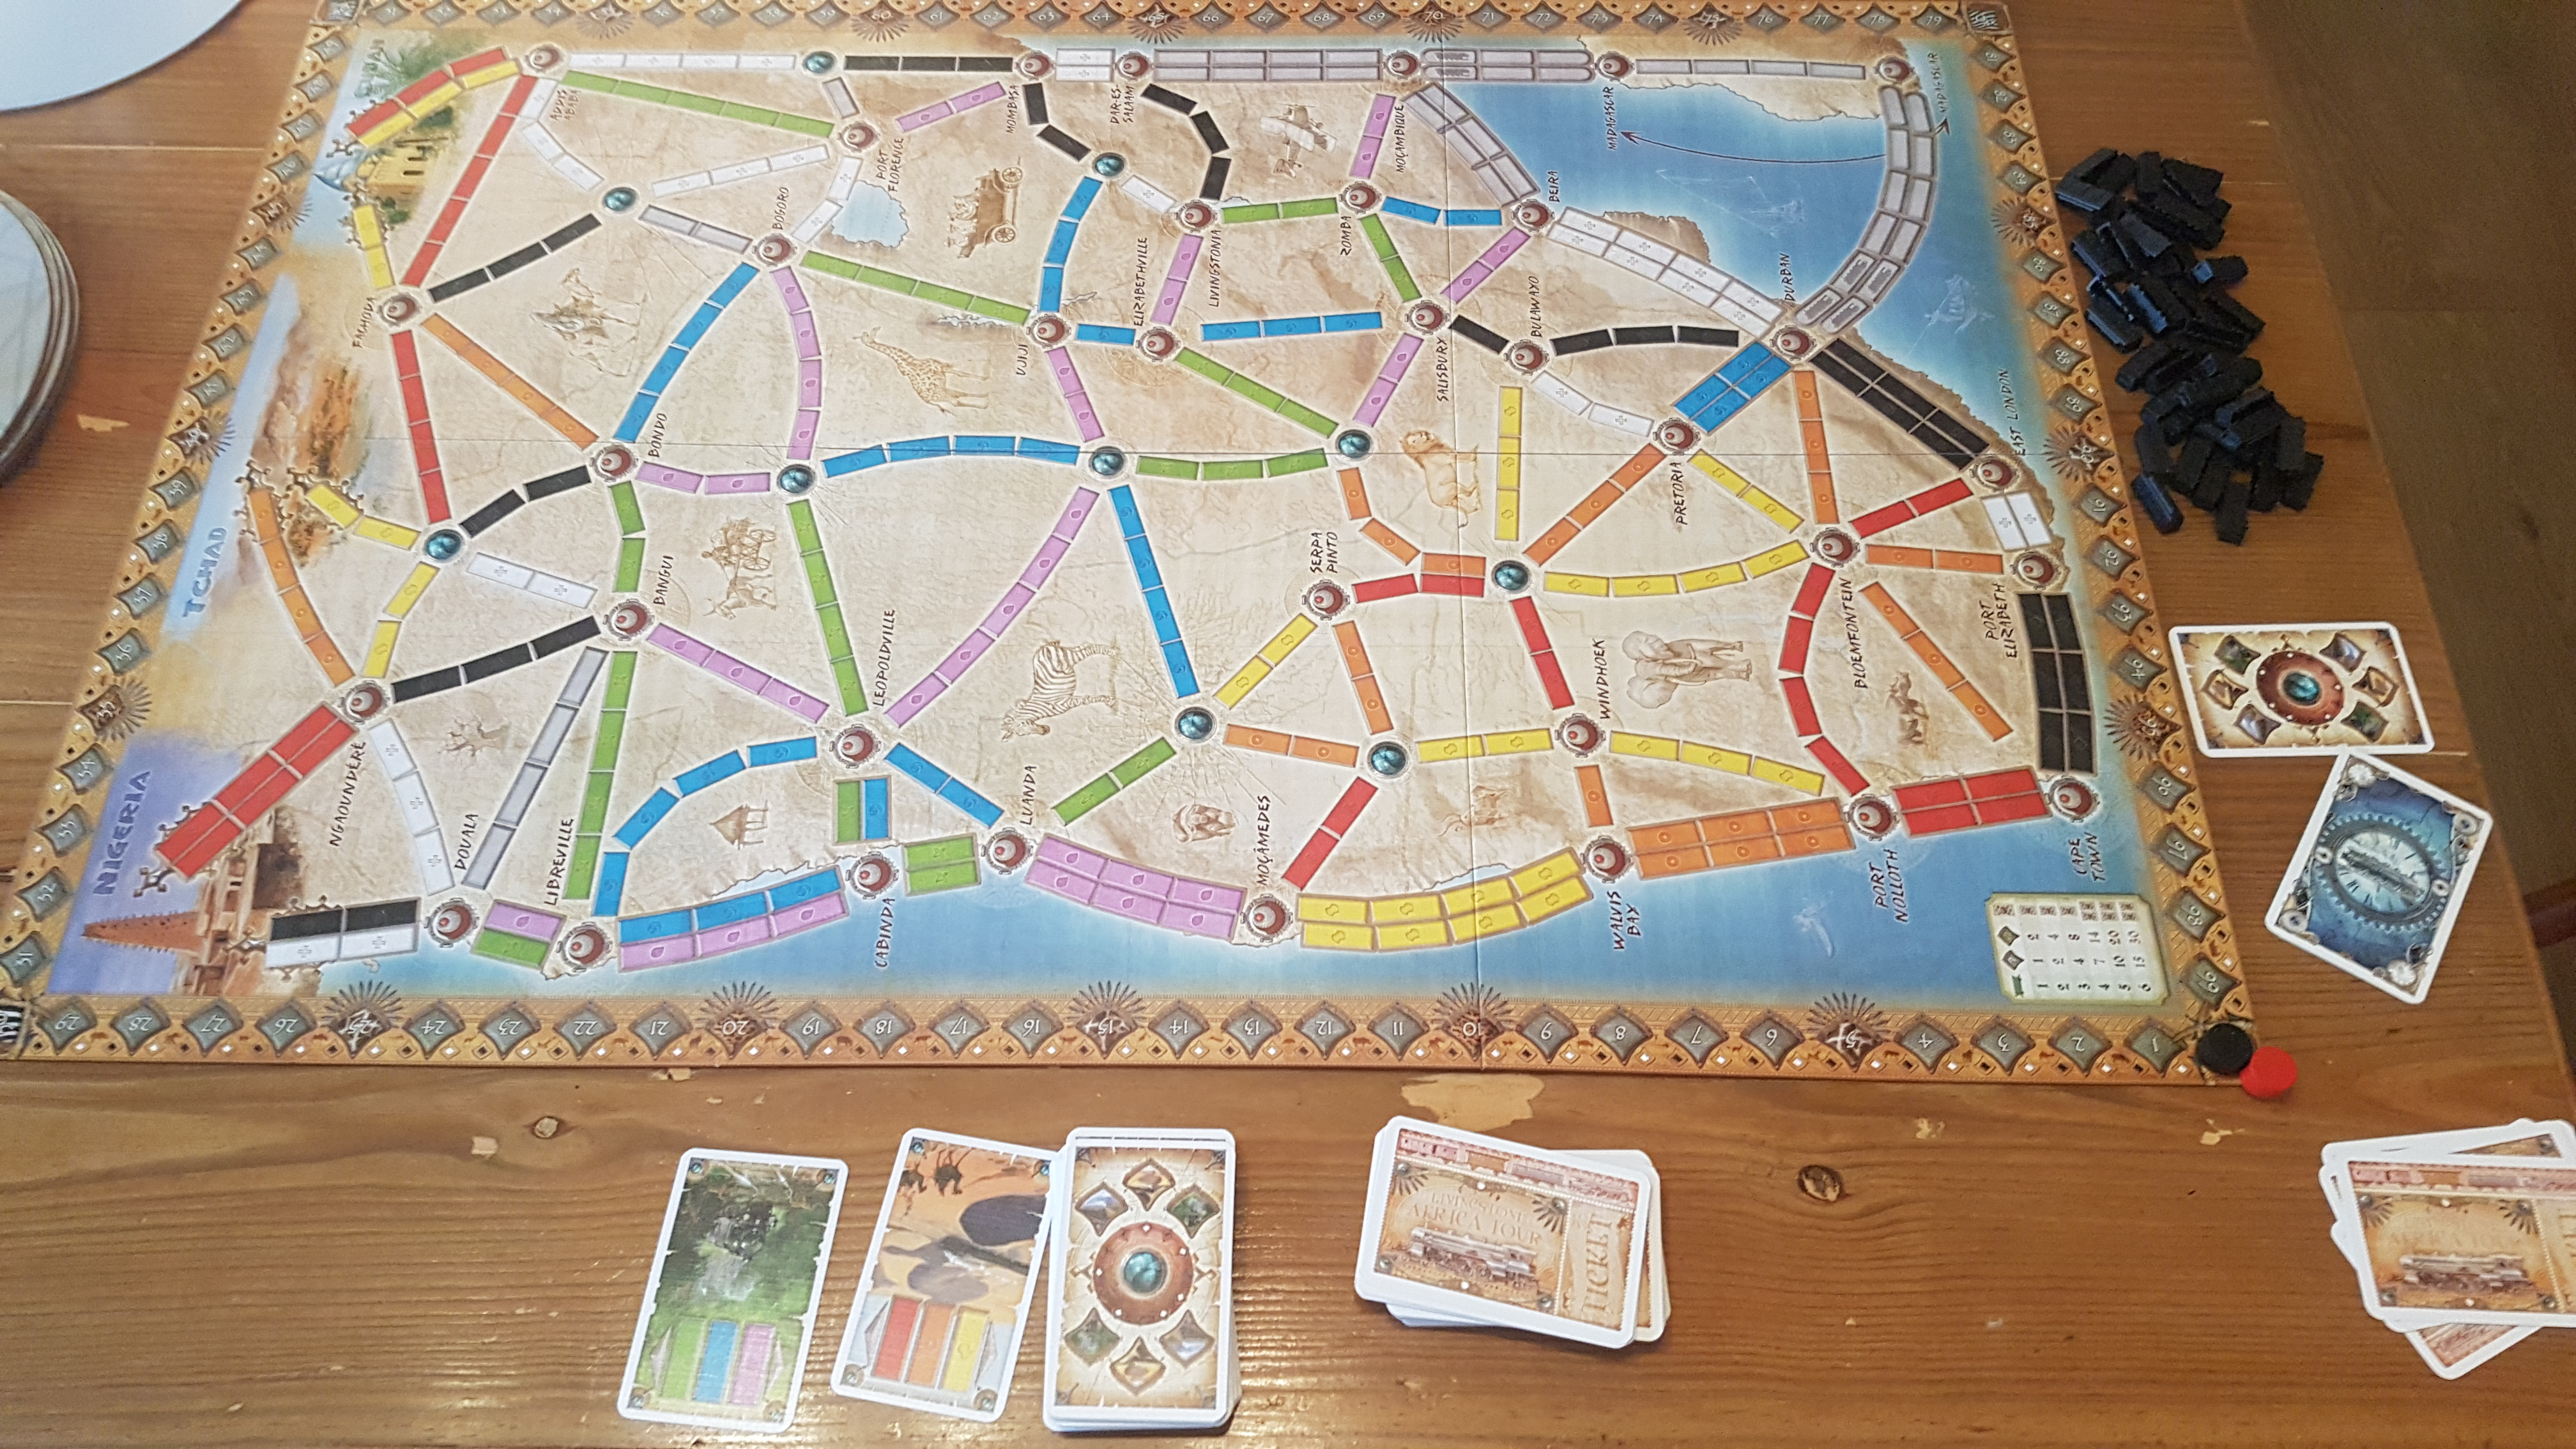 Ticket To Ride Of Africa Review - New Continent, New ... on map of states game, map of china game, map of canada provinces game, map of north america game, map of african countries 2012, map of south america game, map of world game, united states map game, map of life game, blank africa map game, map of europe game, africa map puzzle game, map of spain game, usa map game,